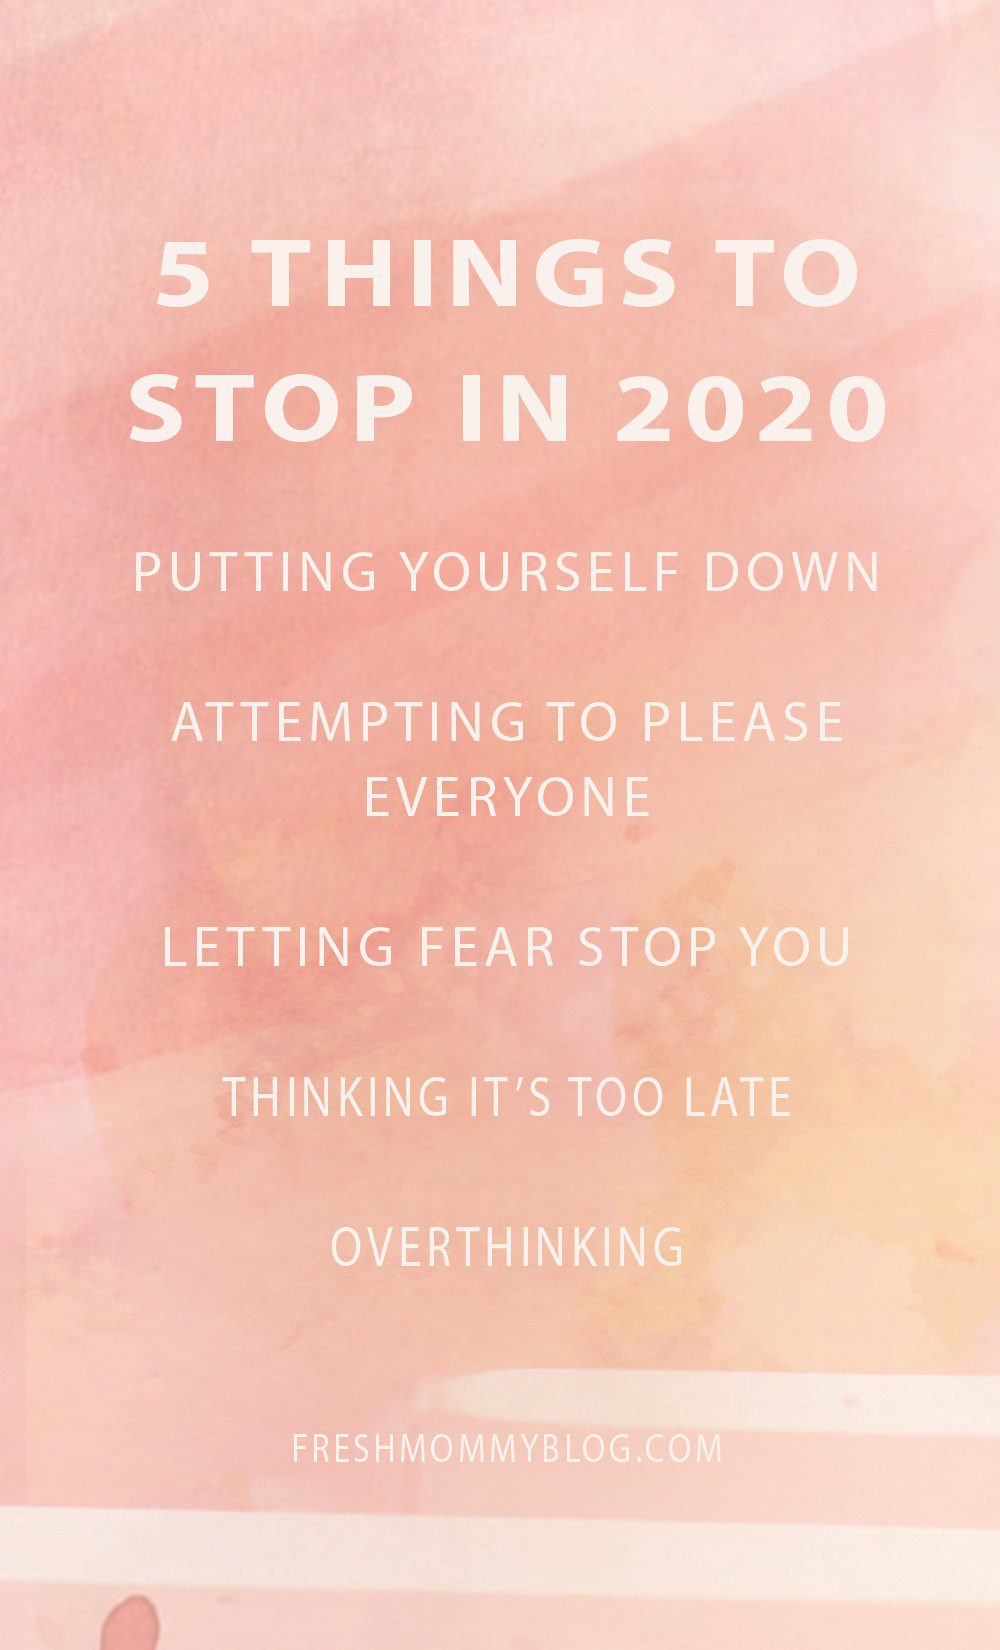 5 Things to Stop in 2020! Let's not hijacking our future by doing these 5 things in the present. It's time for a full, productive, successful year! | 5 Things to Stop Doing in 2020 + Quotes to Inspire Your Year by popular Florida life and style blog: graphic image of 5 Things to Stop Doing in 2020.